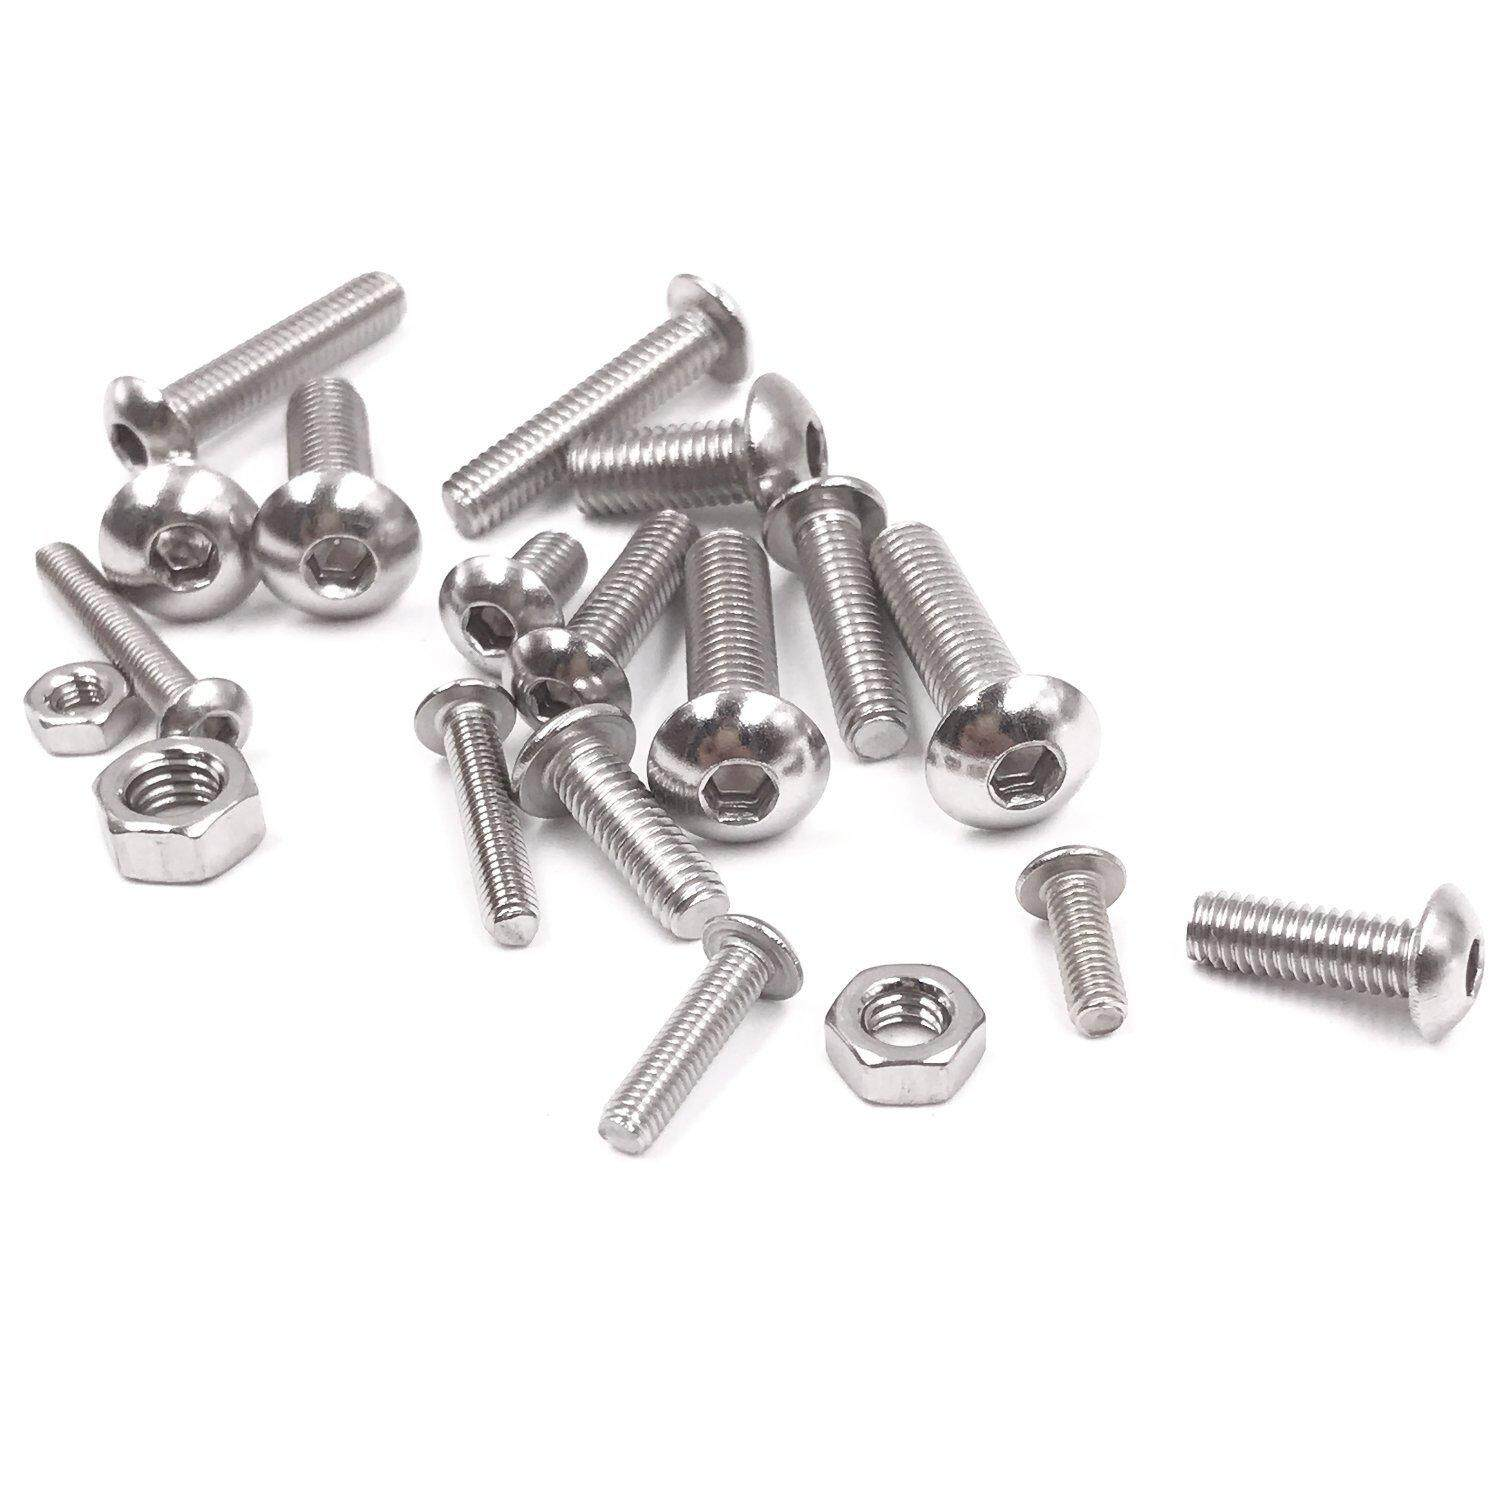 M3 A2 Stainless Steel Metric Hexagon Full Nuts 50